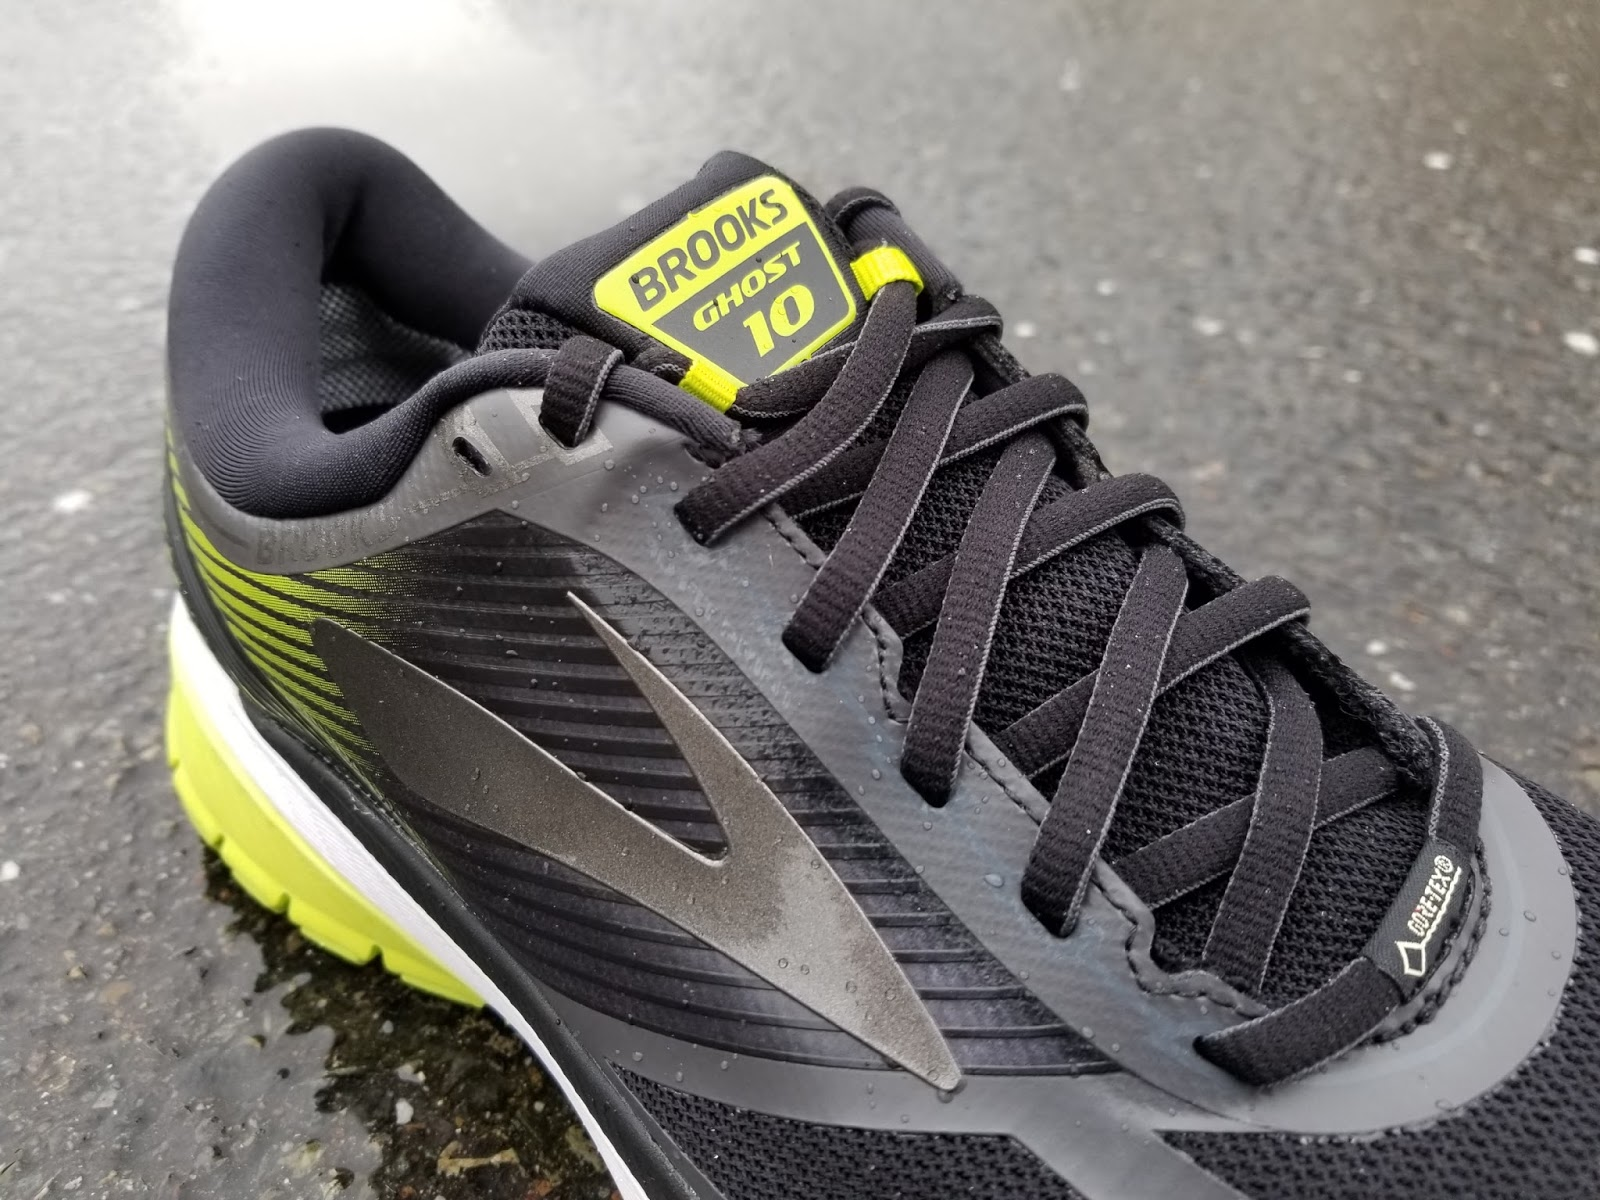 4546fa23c6079 I have put over 50 miles on the Ghost 10 GTX and I really like the feel and  comfort of the shoe. The smooth transition and flexible outsole make  running in ...